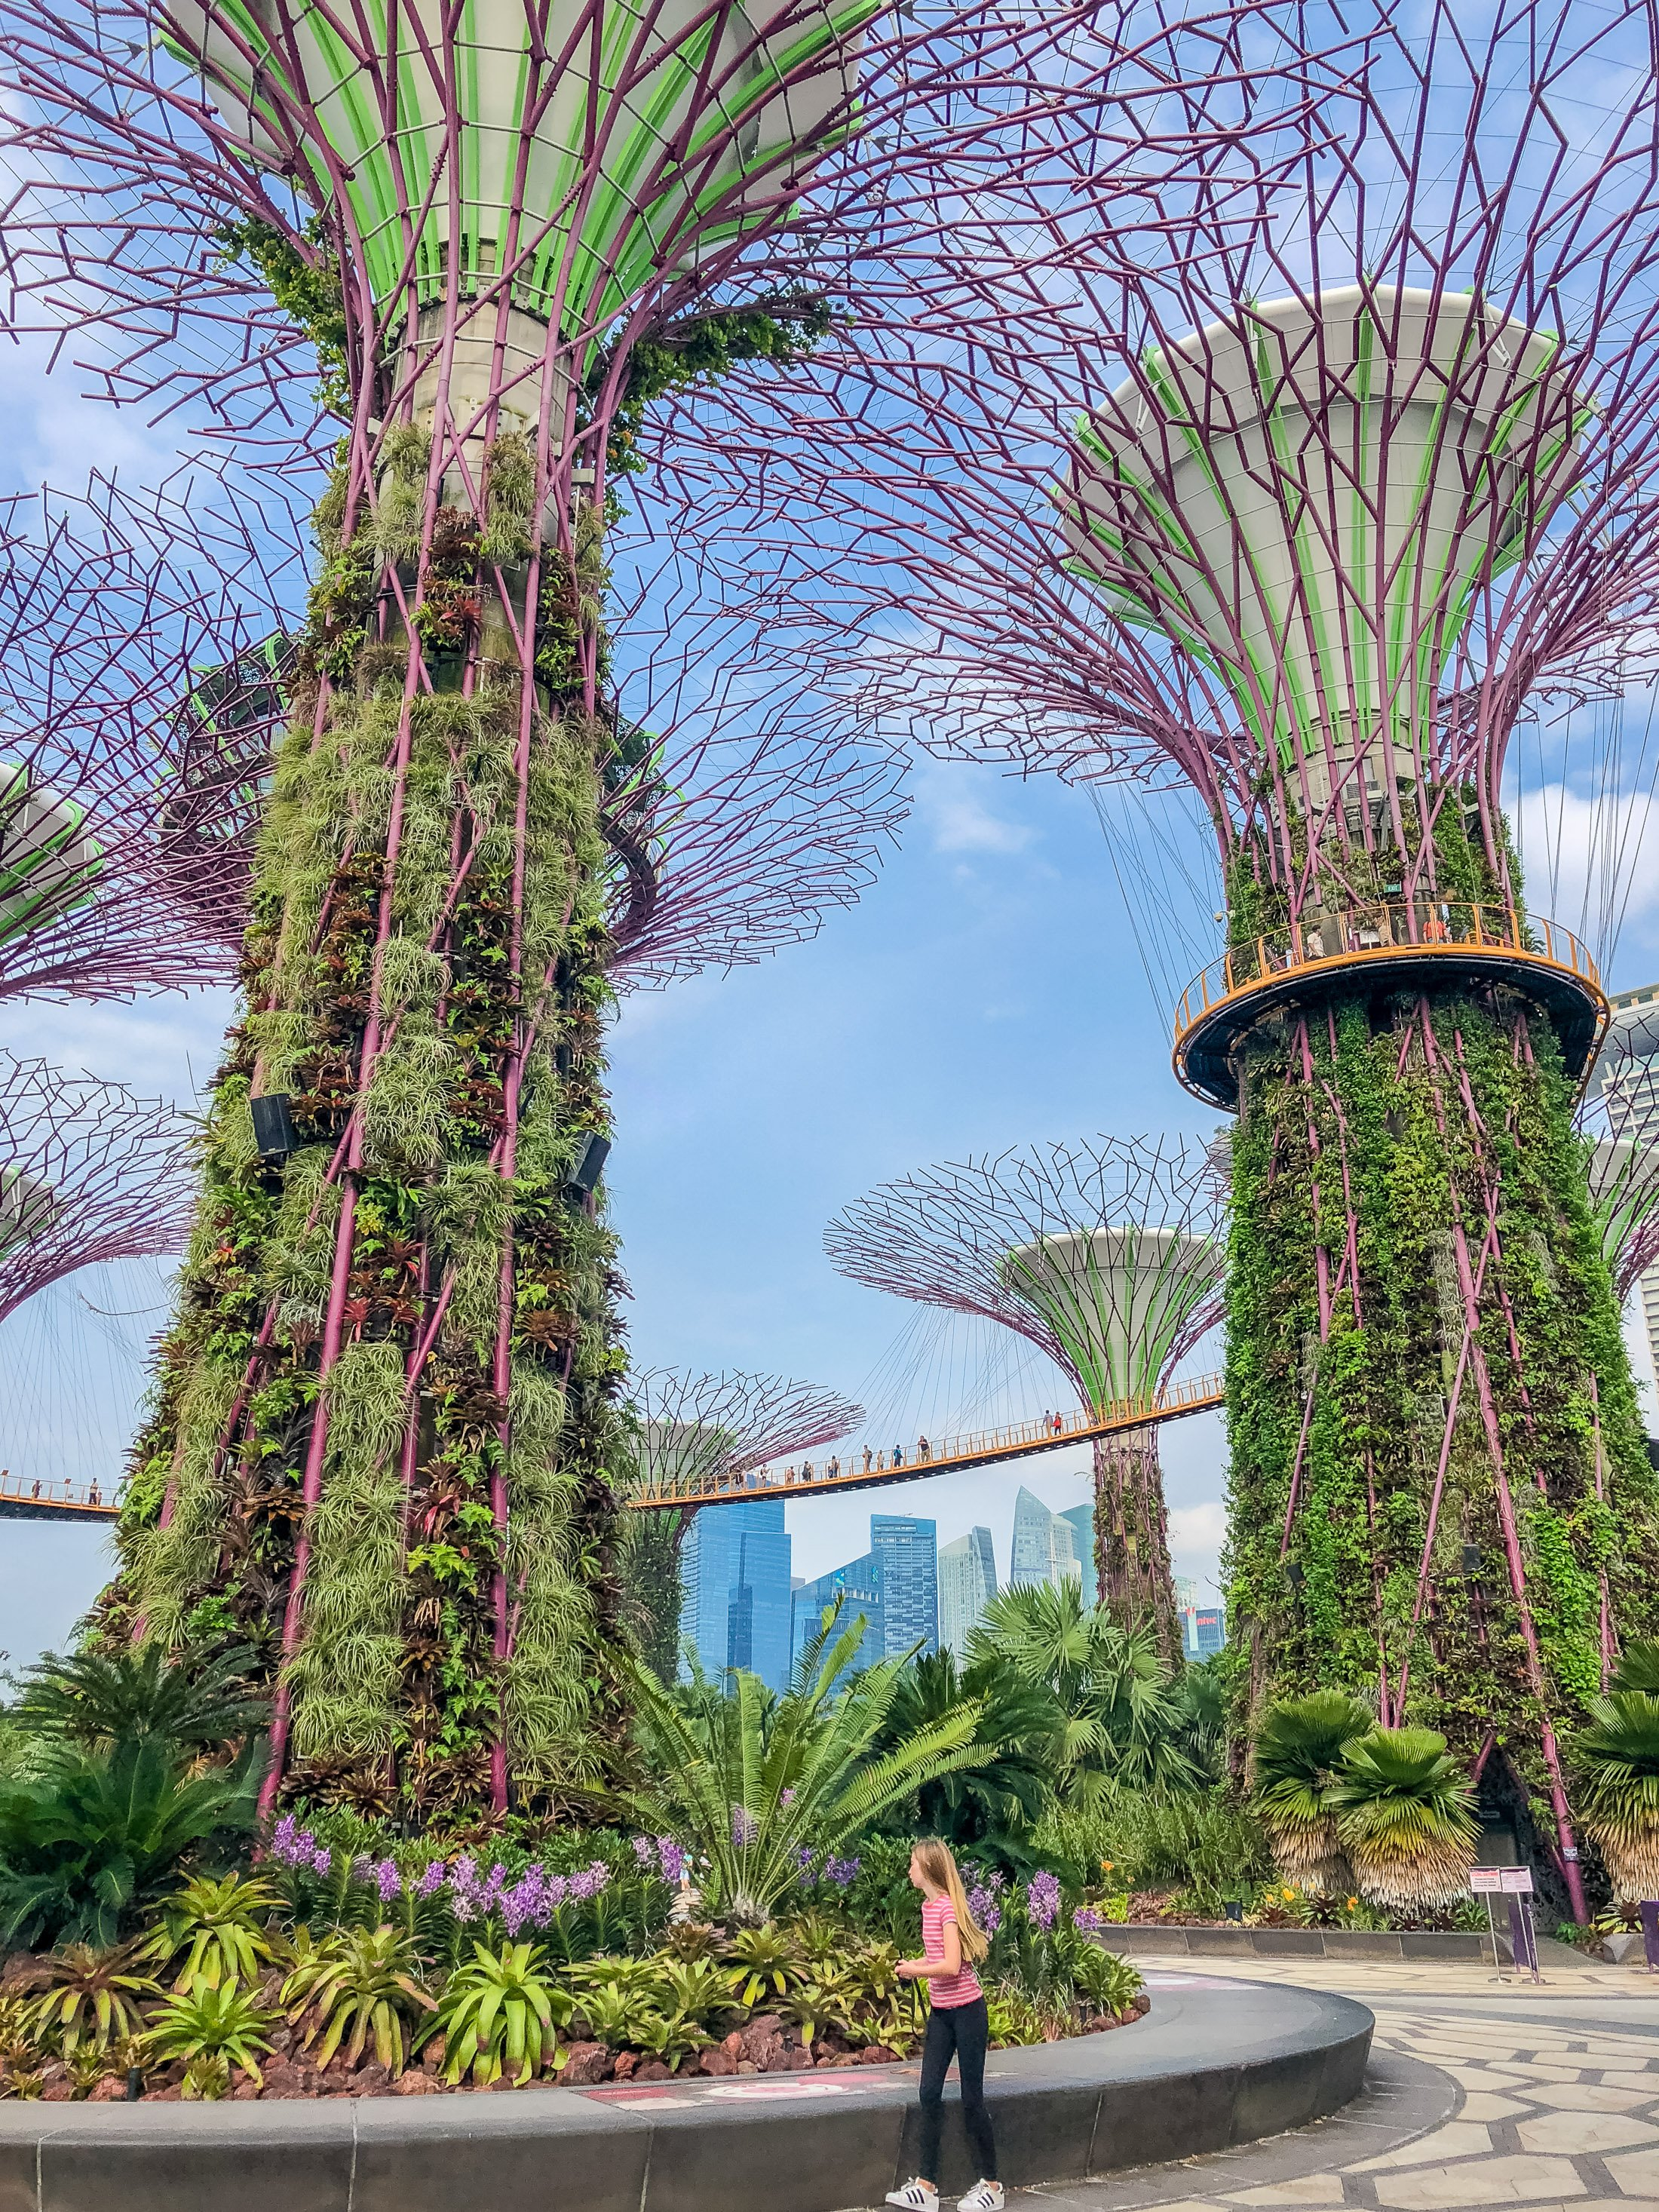 iPhone photo of Singapore's Super Tree Garden